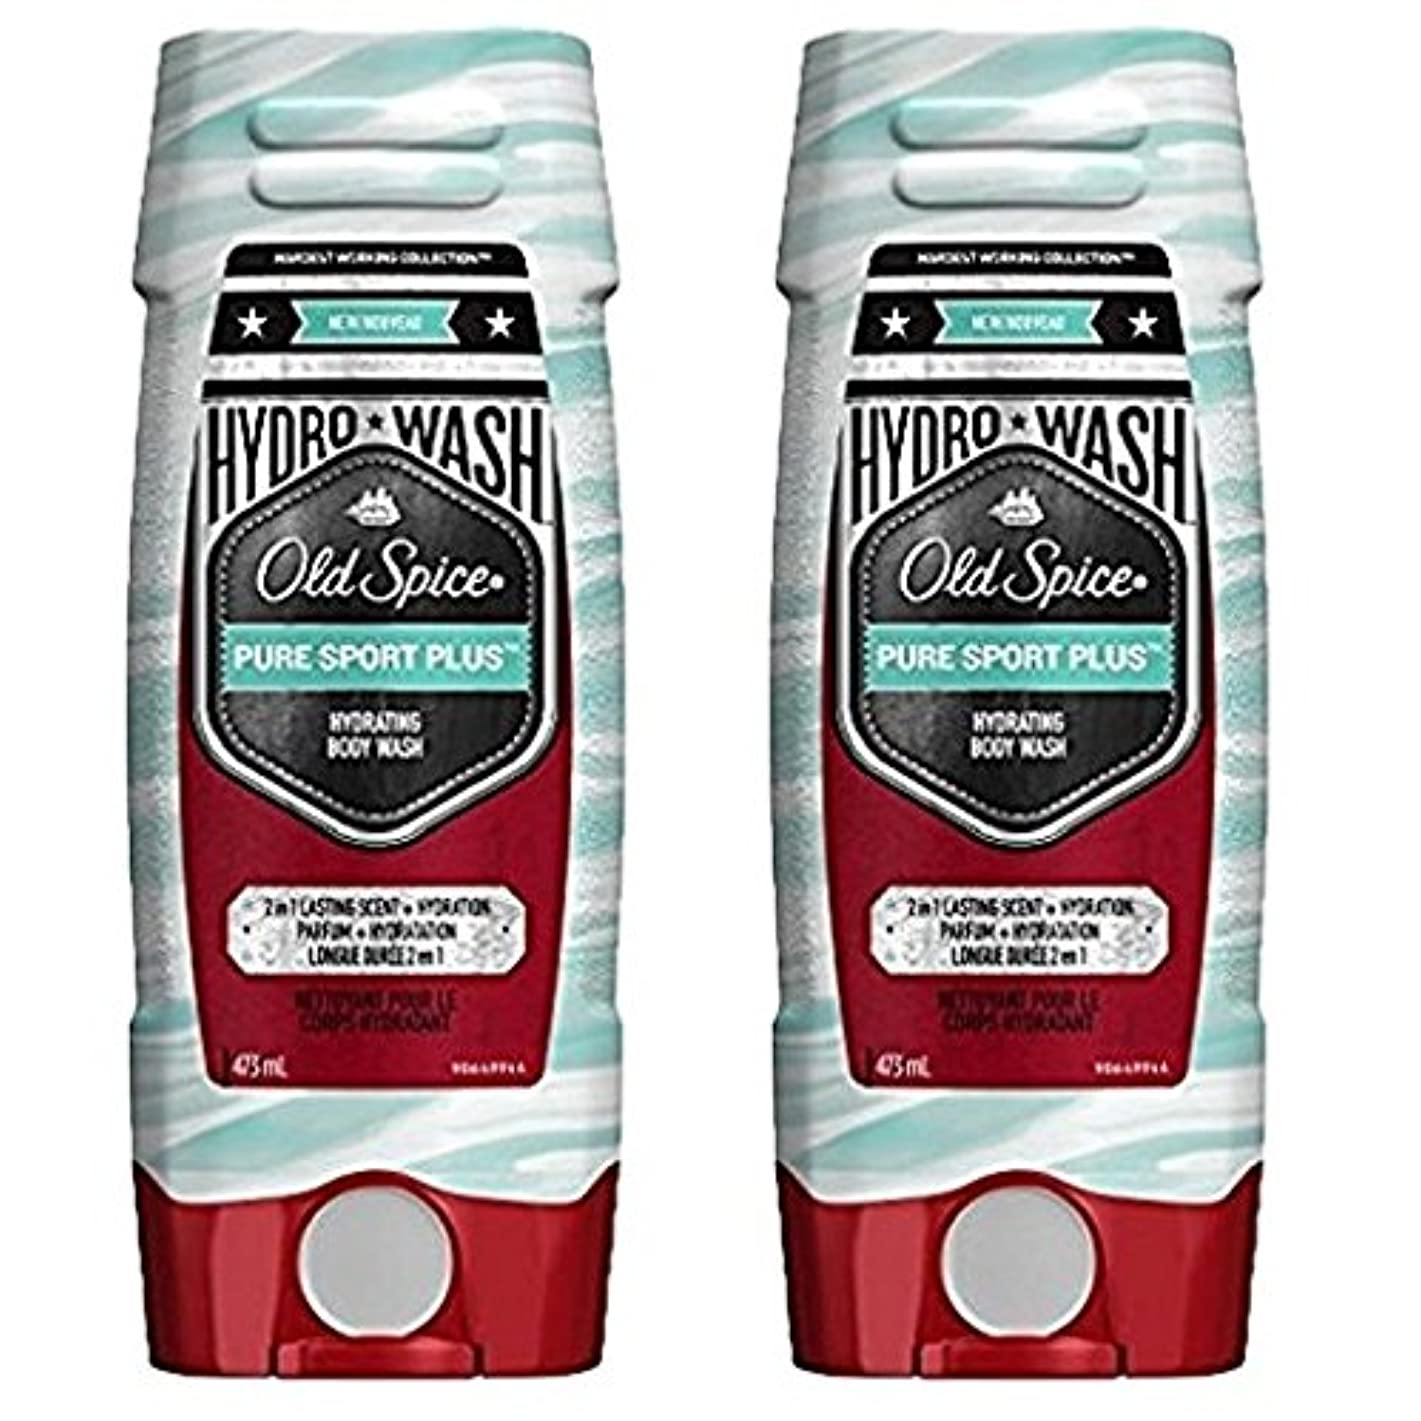 艦隊凍るシャット海外直送品 Old Spice Hydro Wash Body Wash Hardest Working Collection Pure Sport Plus 16 Oz, 2 Pack ボディーソープ 2本